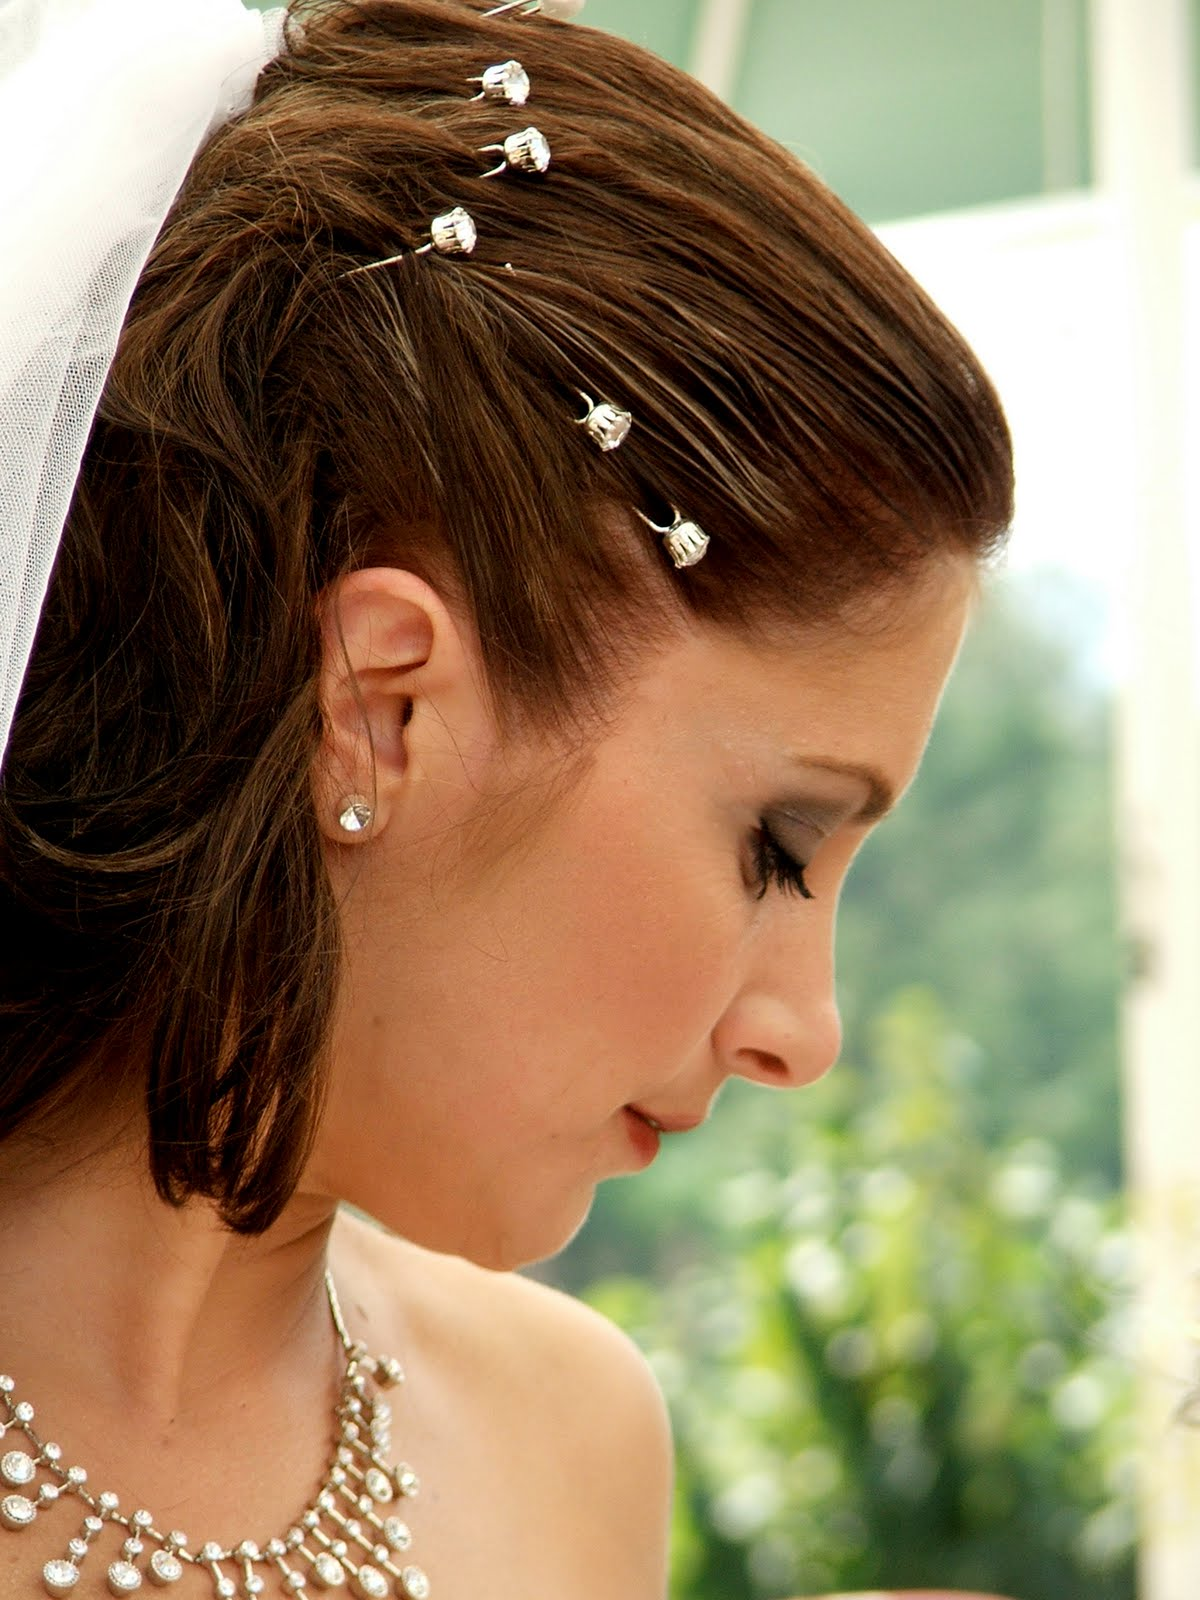 fashion hairstyle celebrities: bridal veil ideas for short